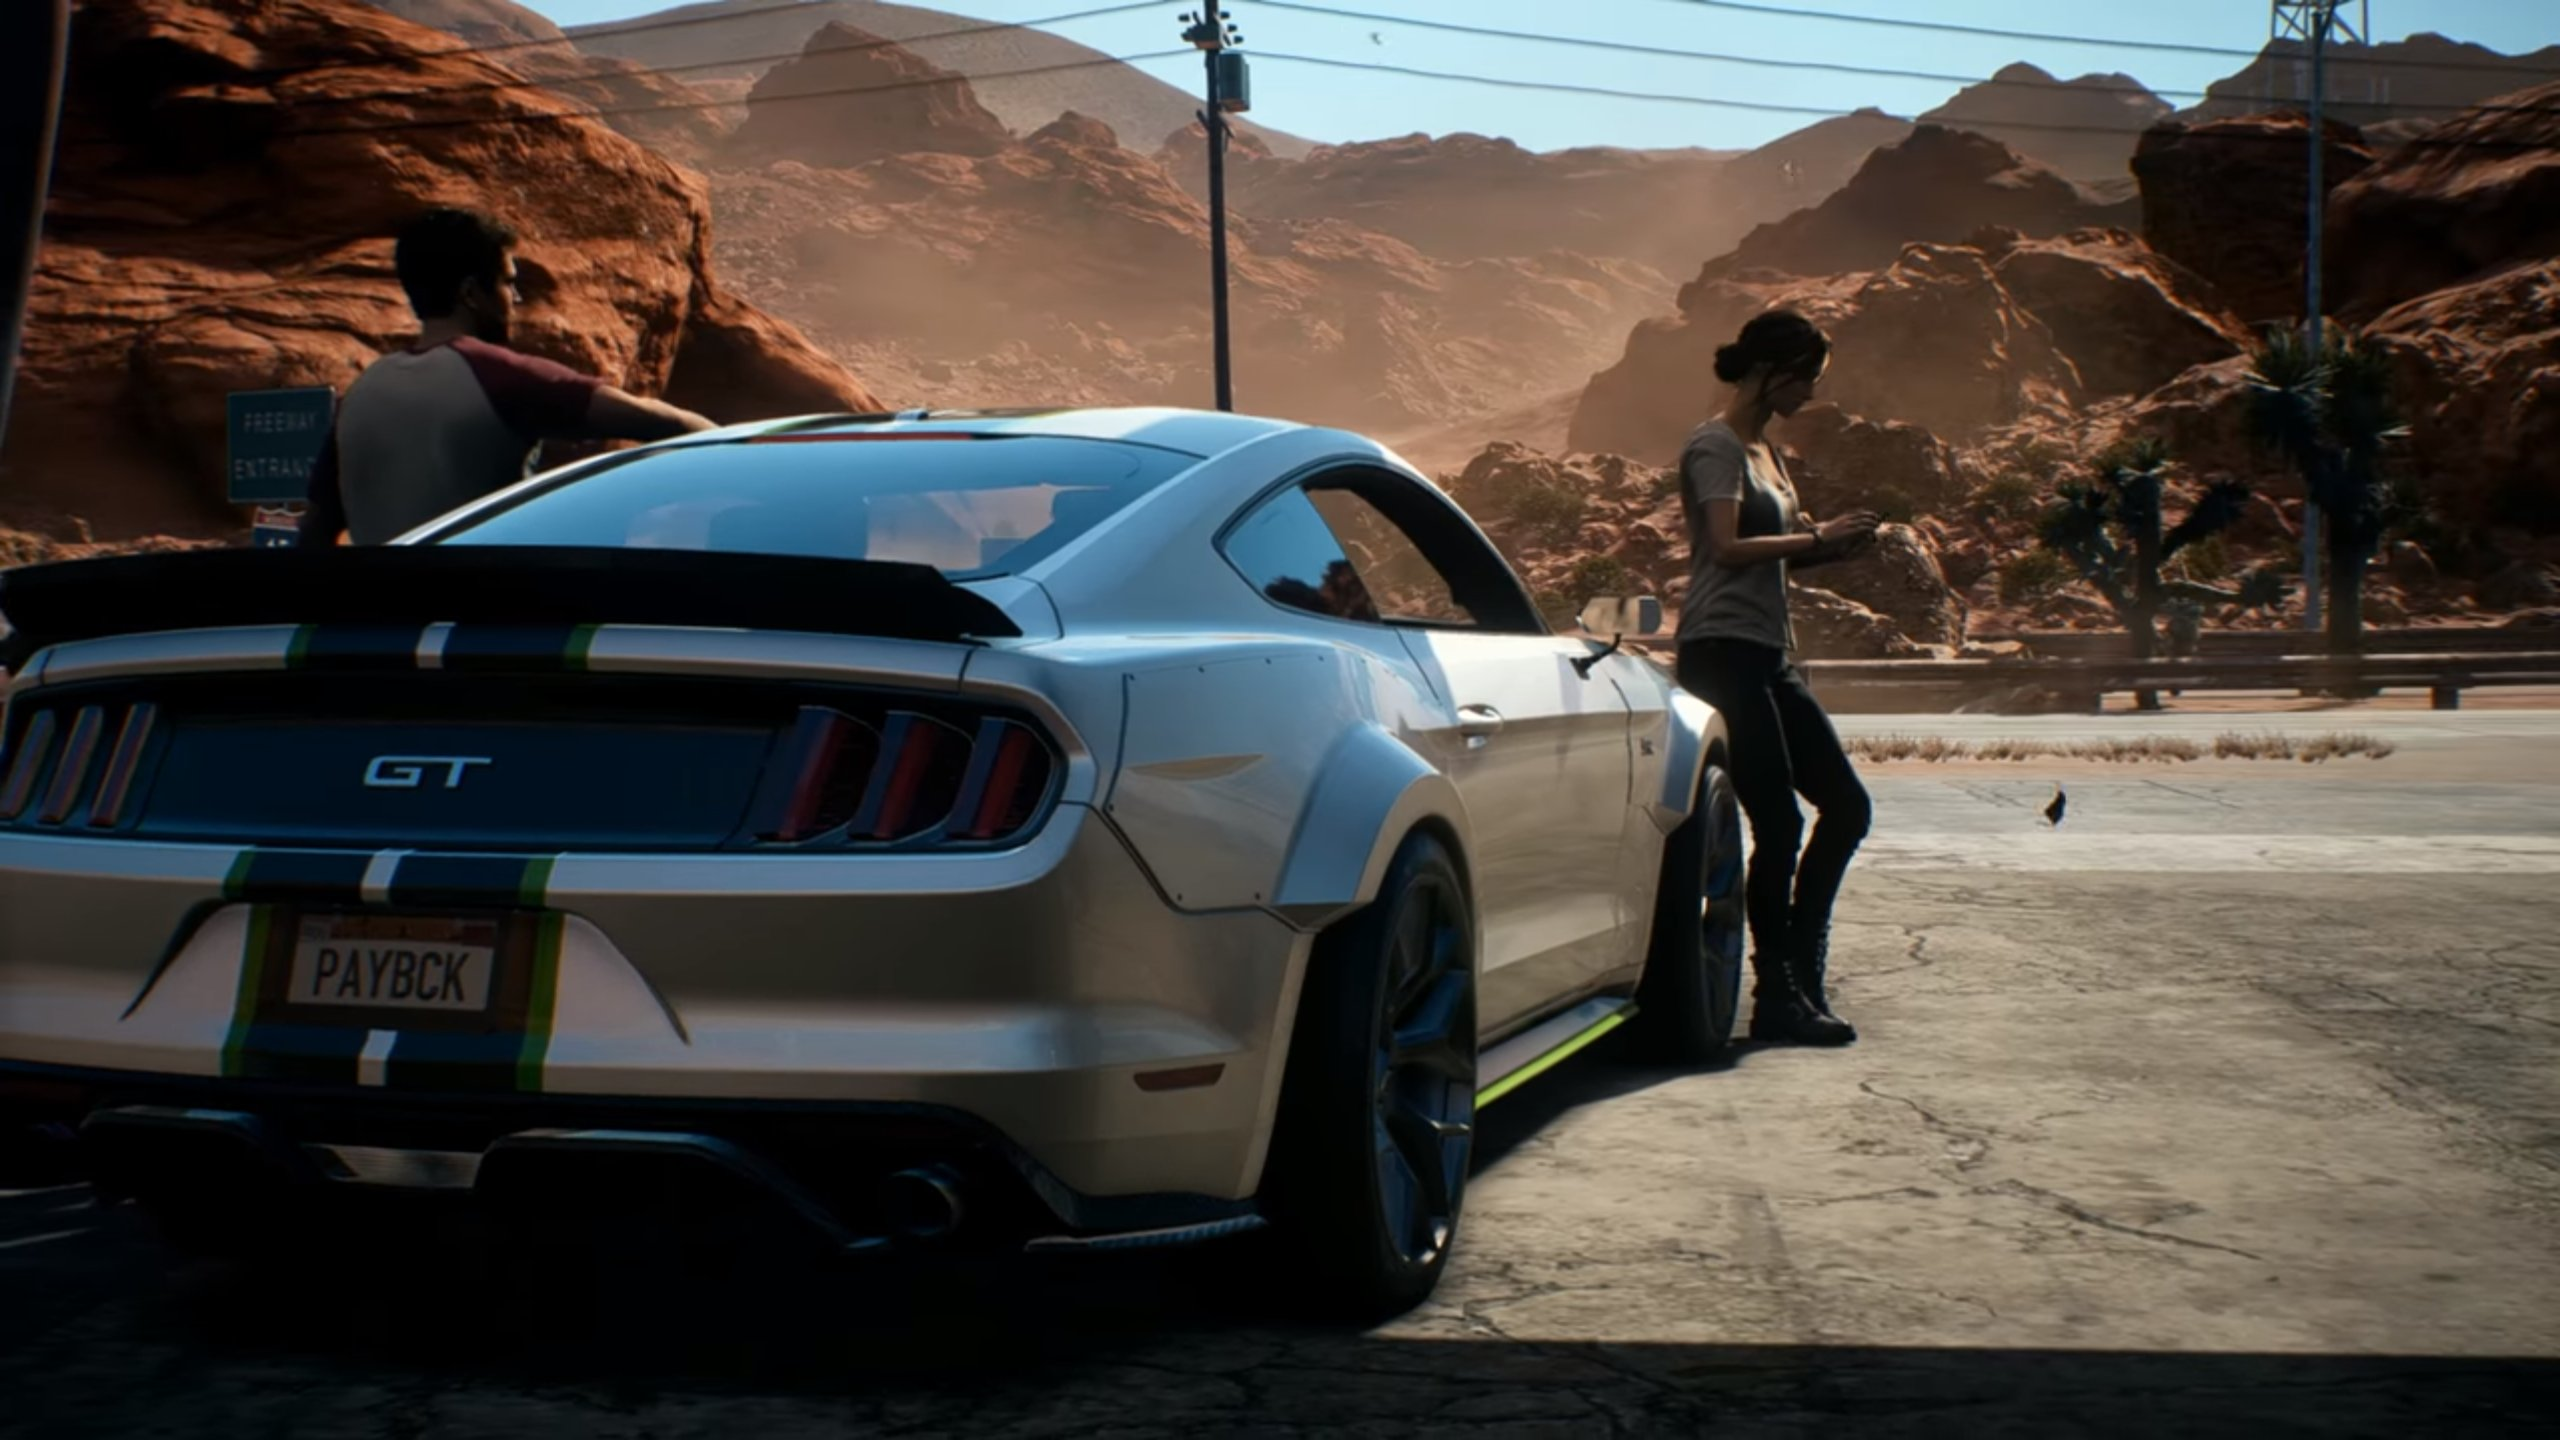 Need for speed wallpapers free download